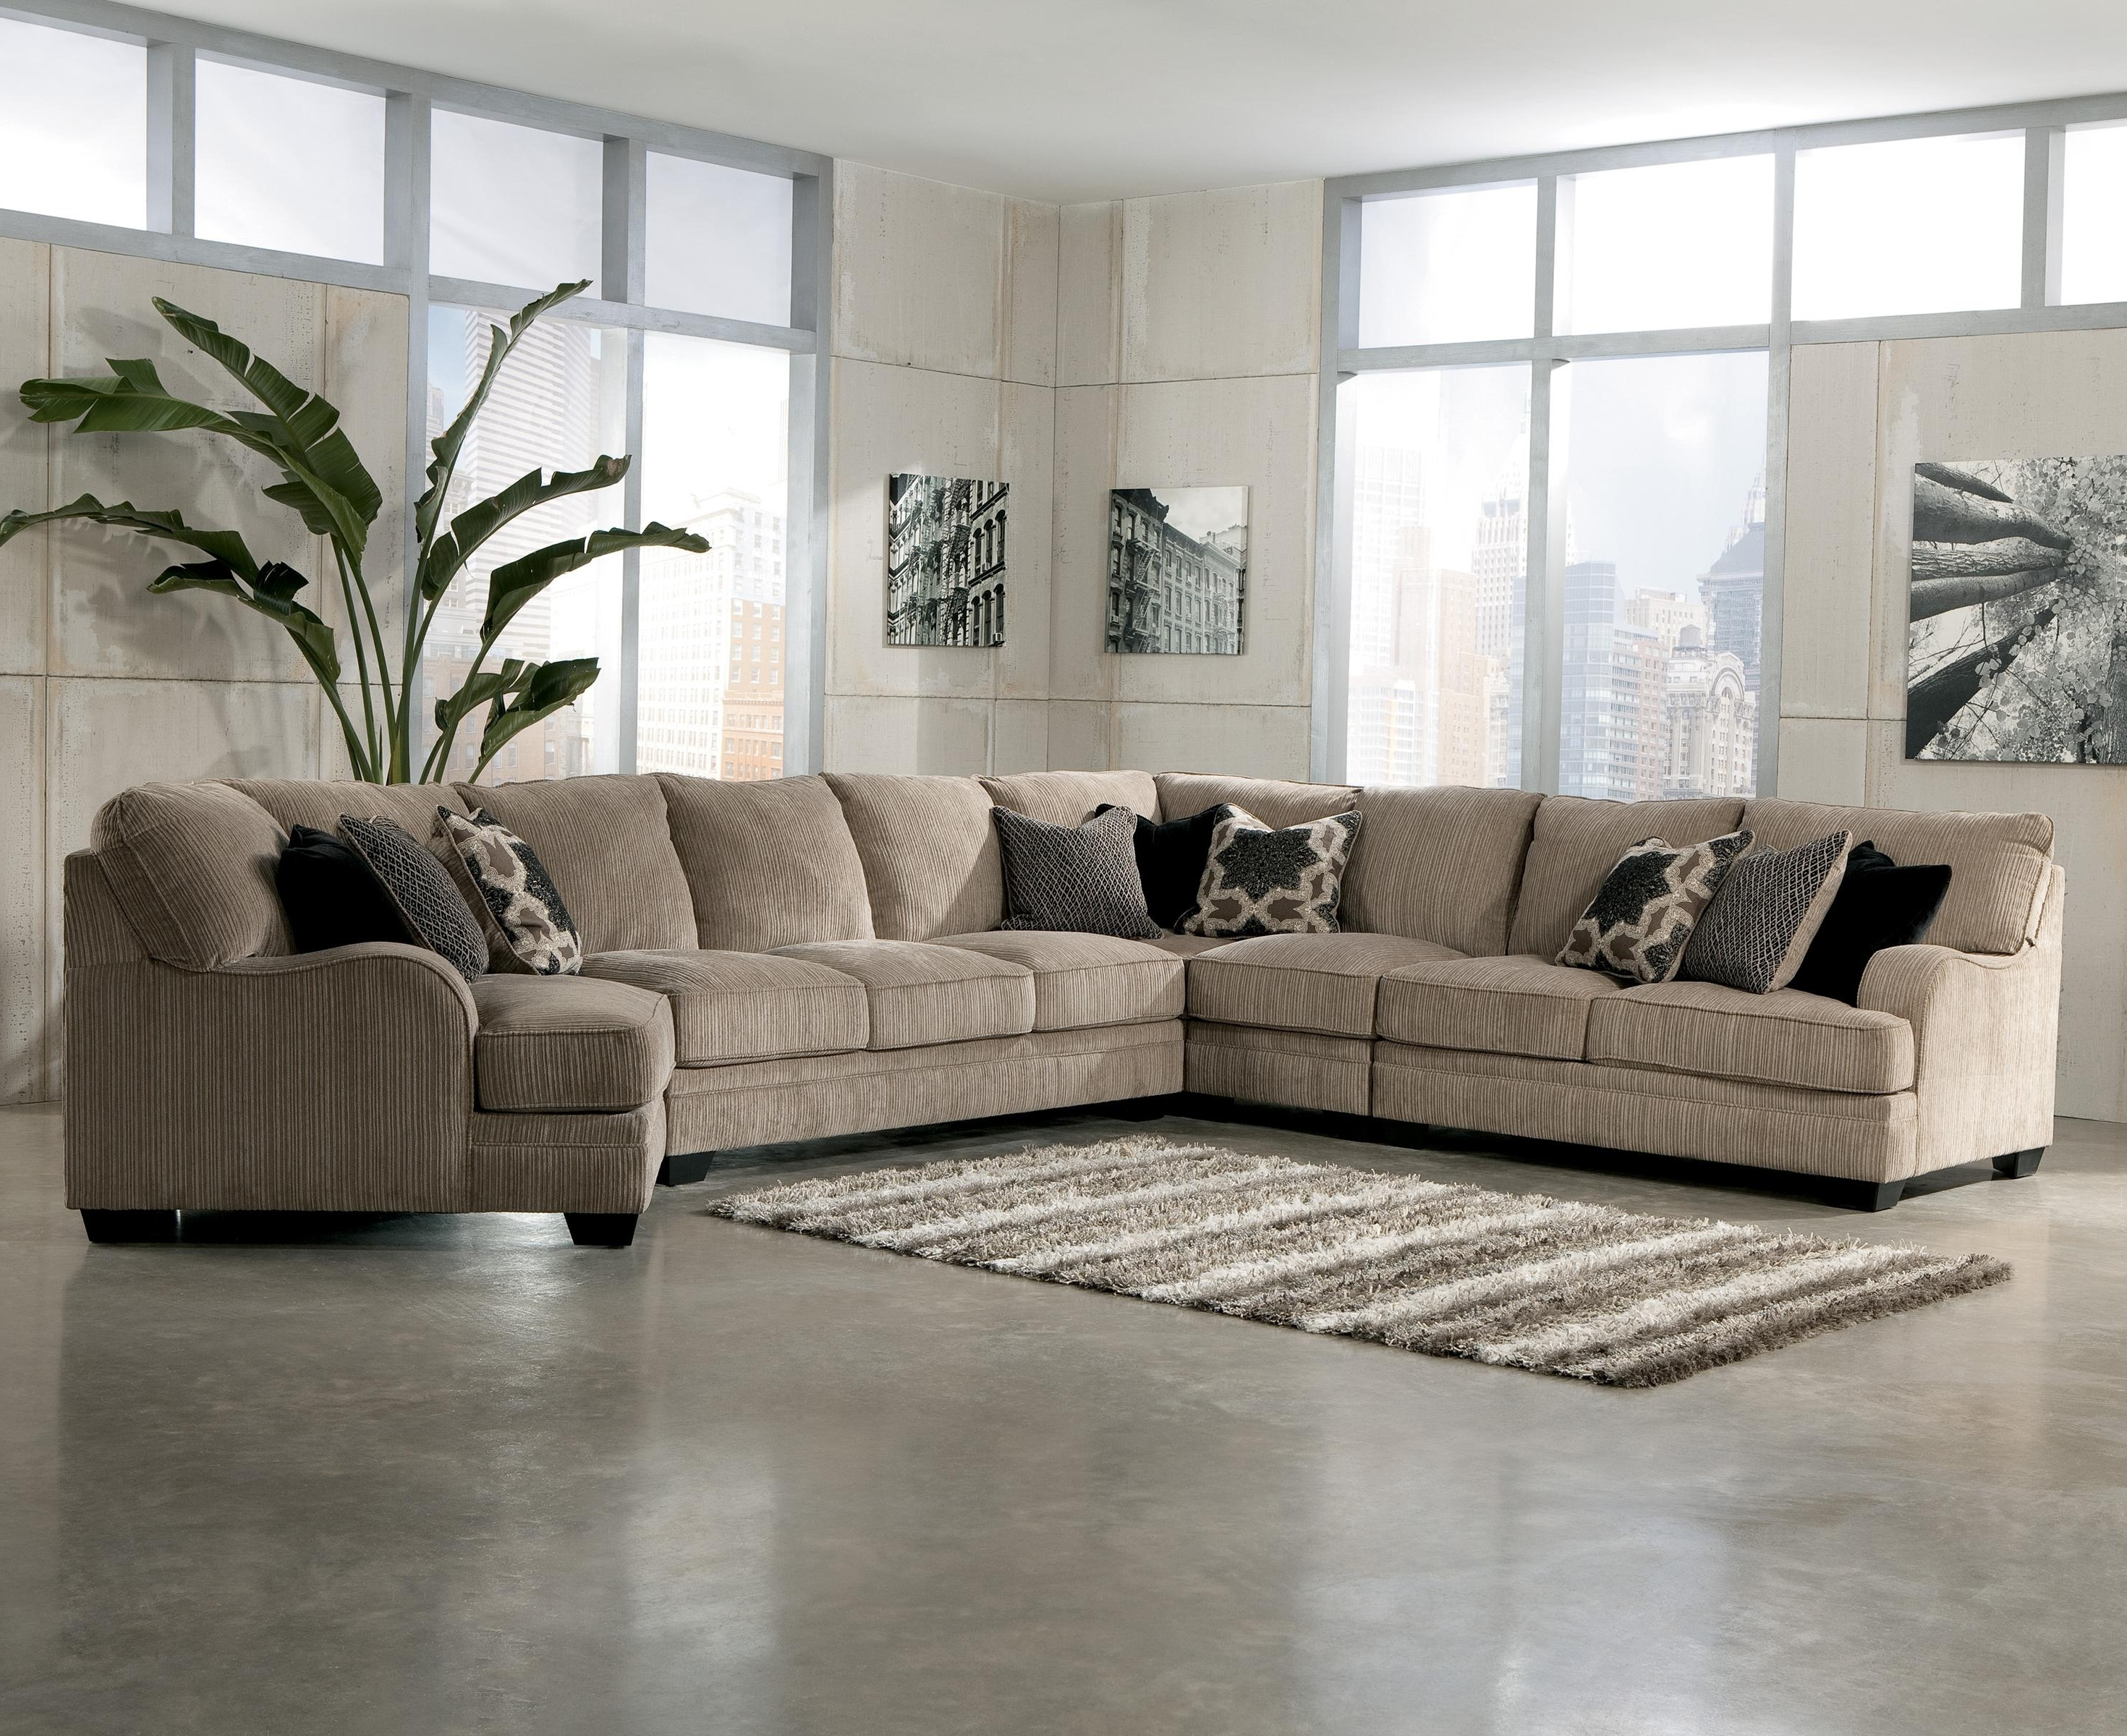 Signature Designashley Katisha – Platinum 5 Piece Sectional Intended For Favorite Sectional Sofas In Greenville Sc (View 17 of 20)